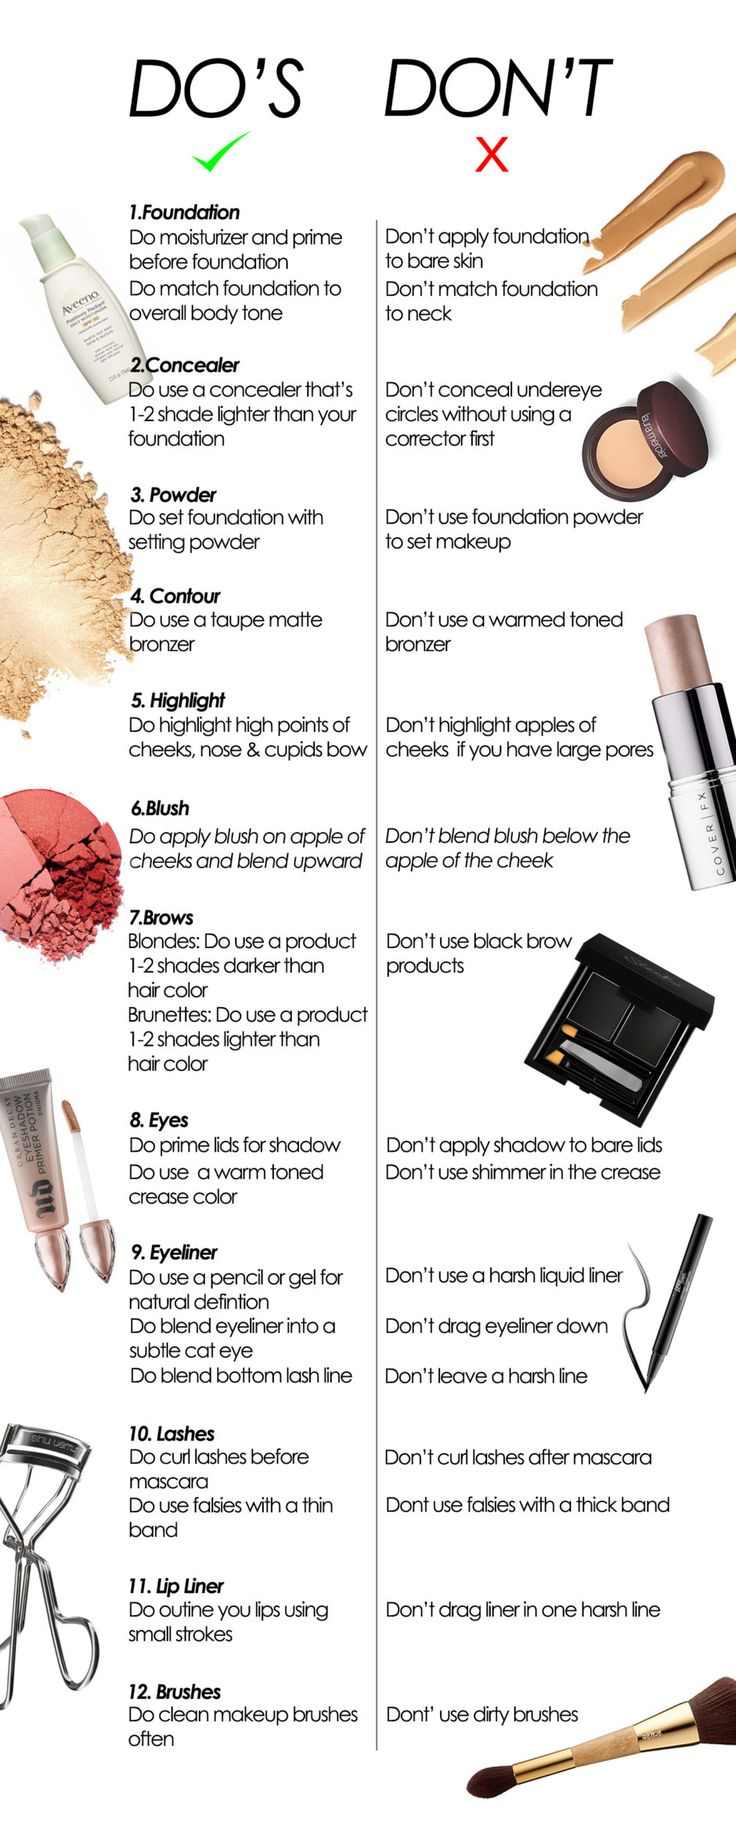 12 Common Makeup Mistakes That Age You